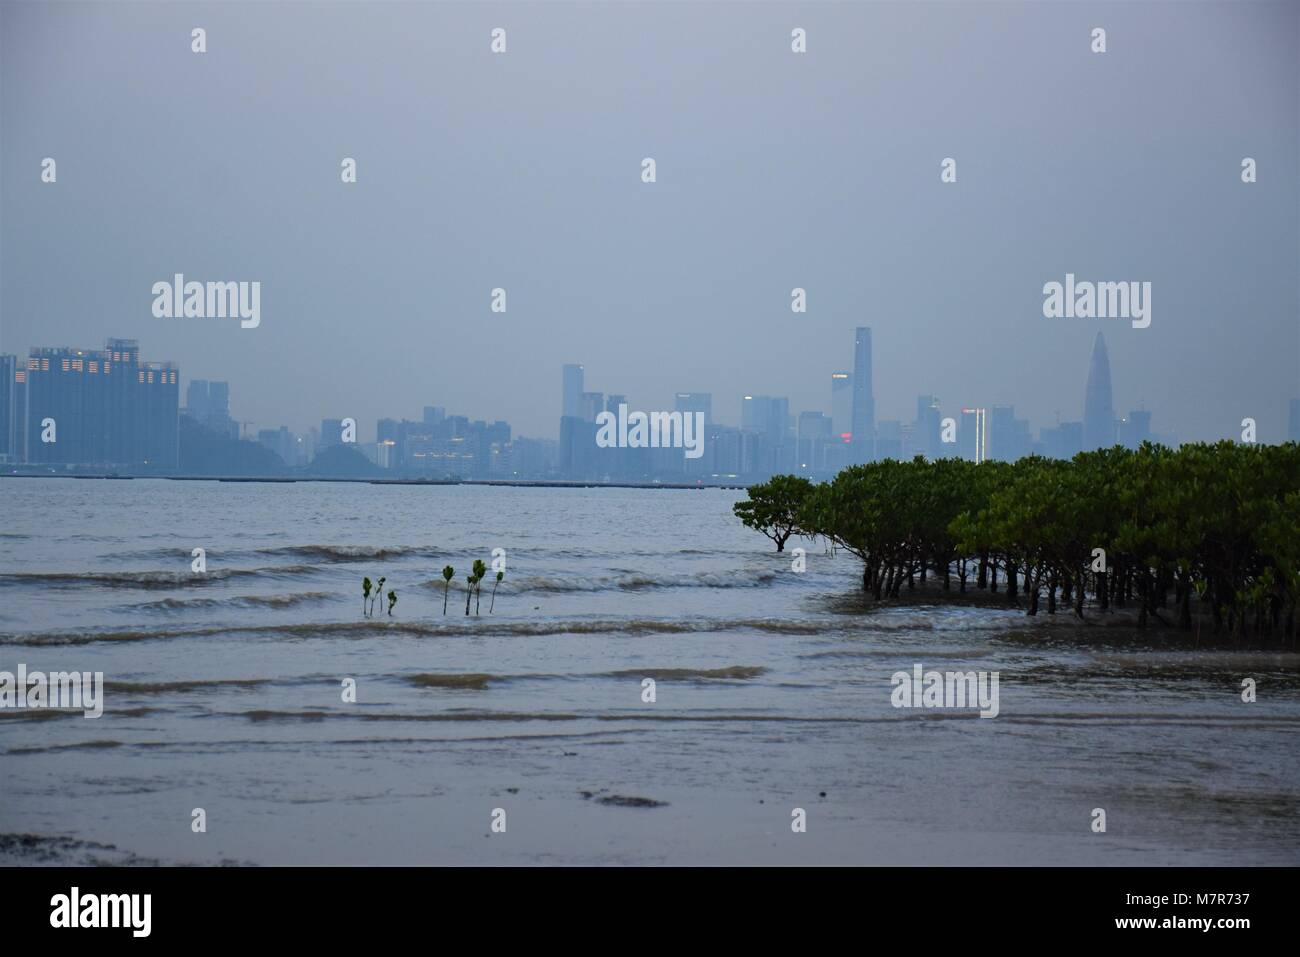 Shenzhen bay and skyline seen from New Territories, Hong Kong Stock Photo